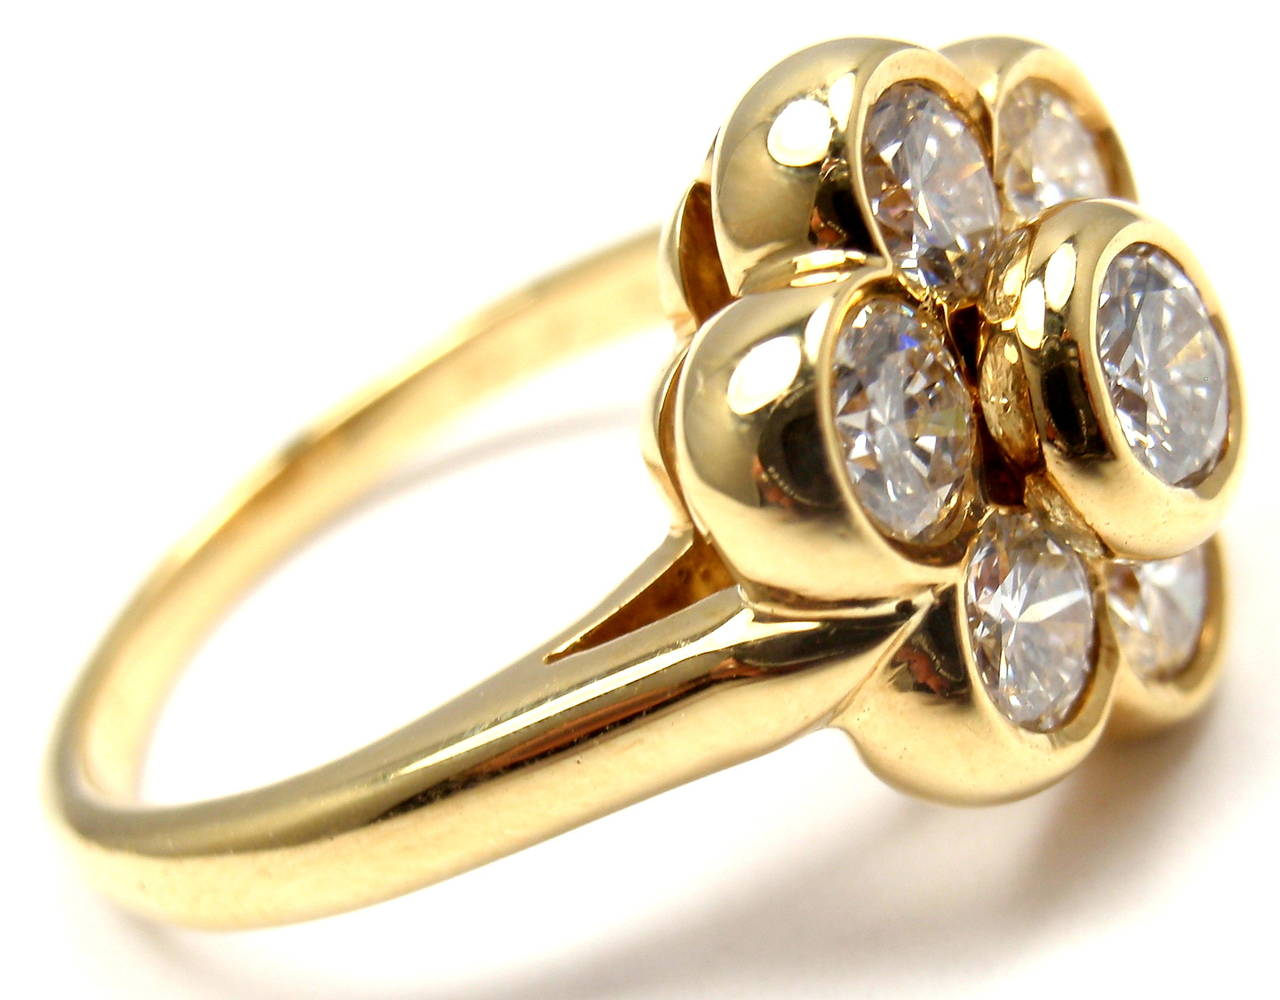 18k Yellow Gold Diamond Fleurette Flower Ring by Van Cleef & Arpels. 